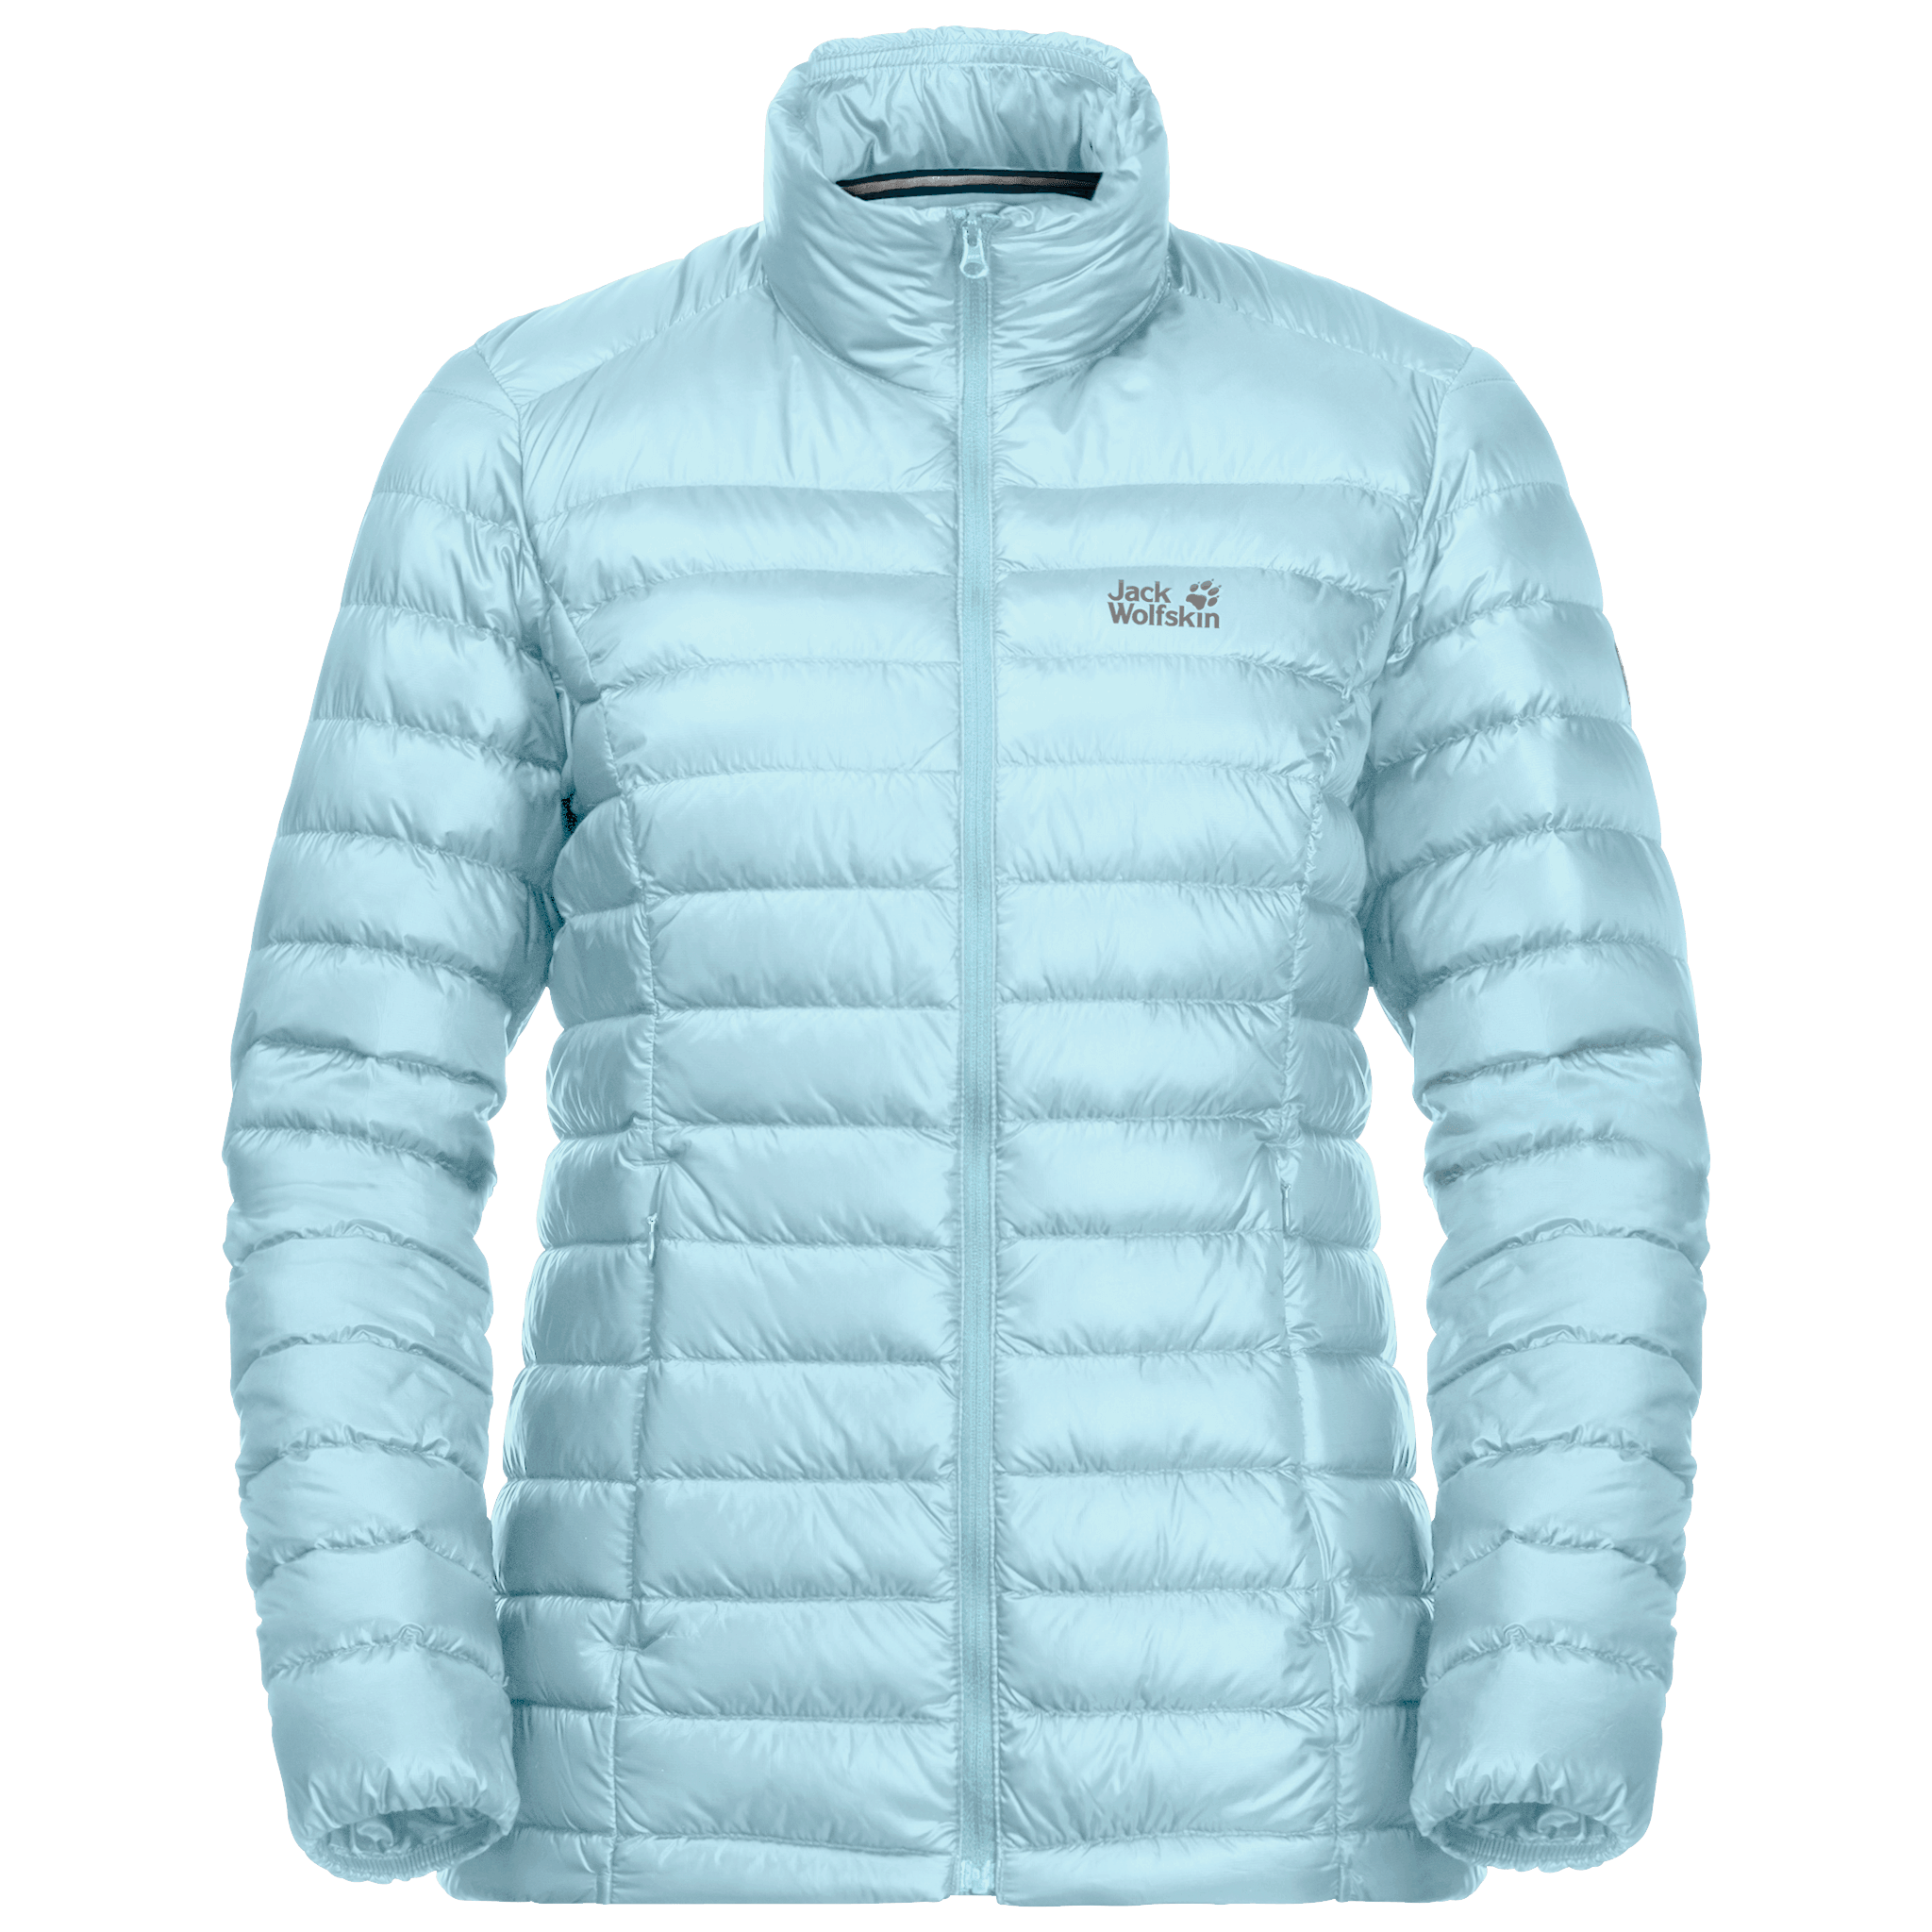 Frosted Blue Windproof Down Jacket Women